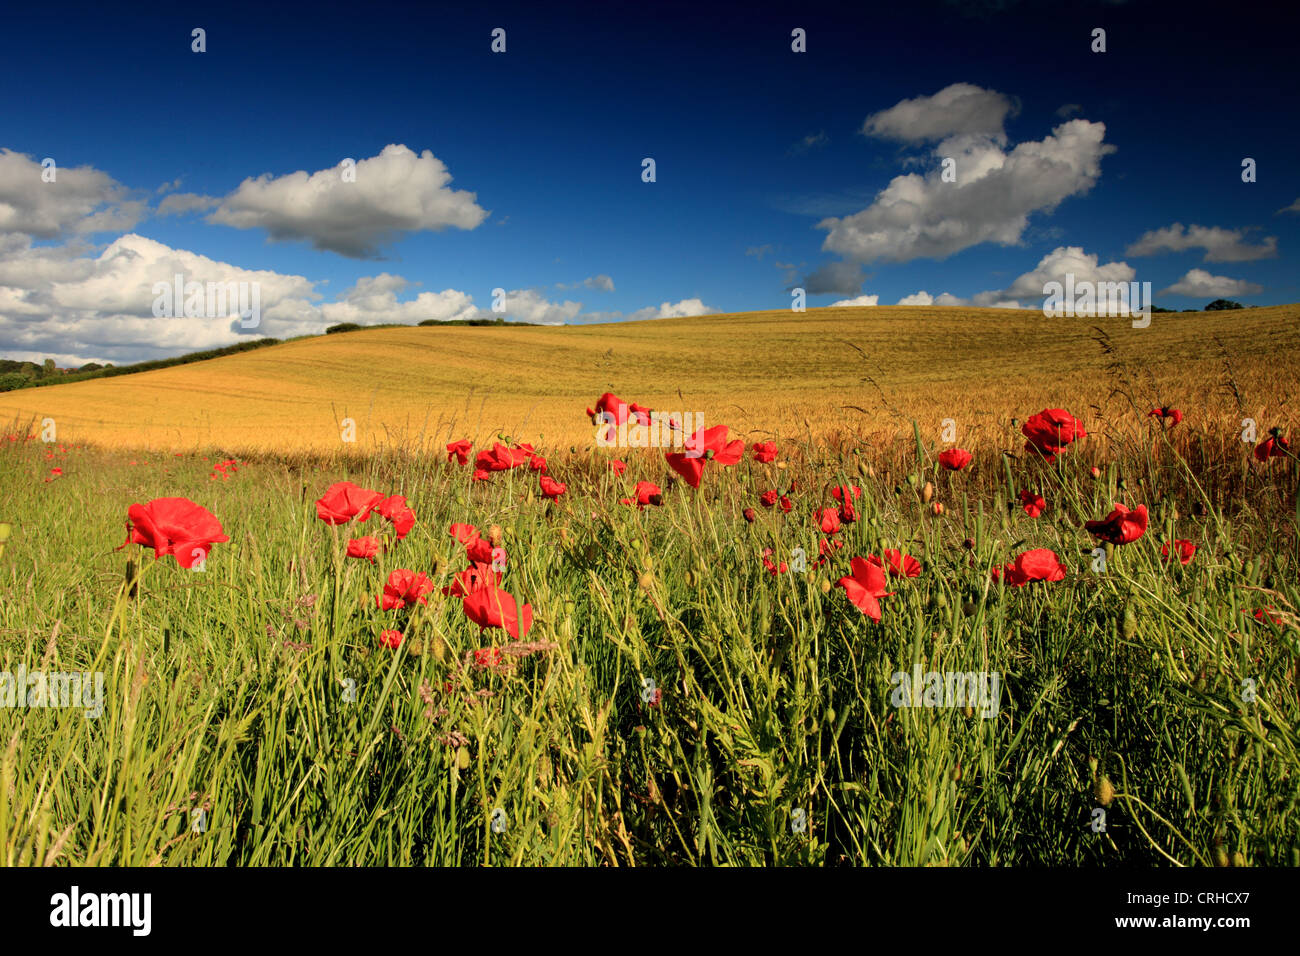 Poppies pictured against a wheat field and blue sky UK - Stock Image